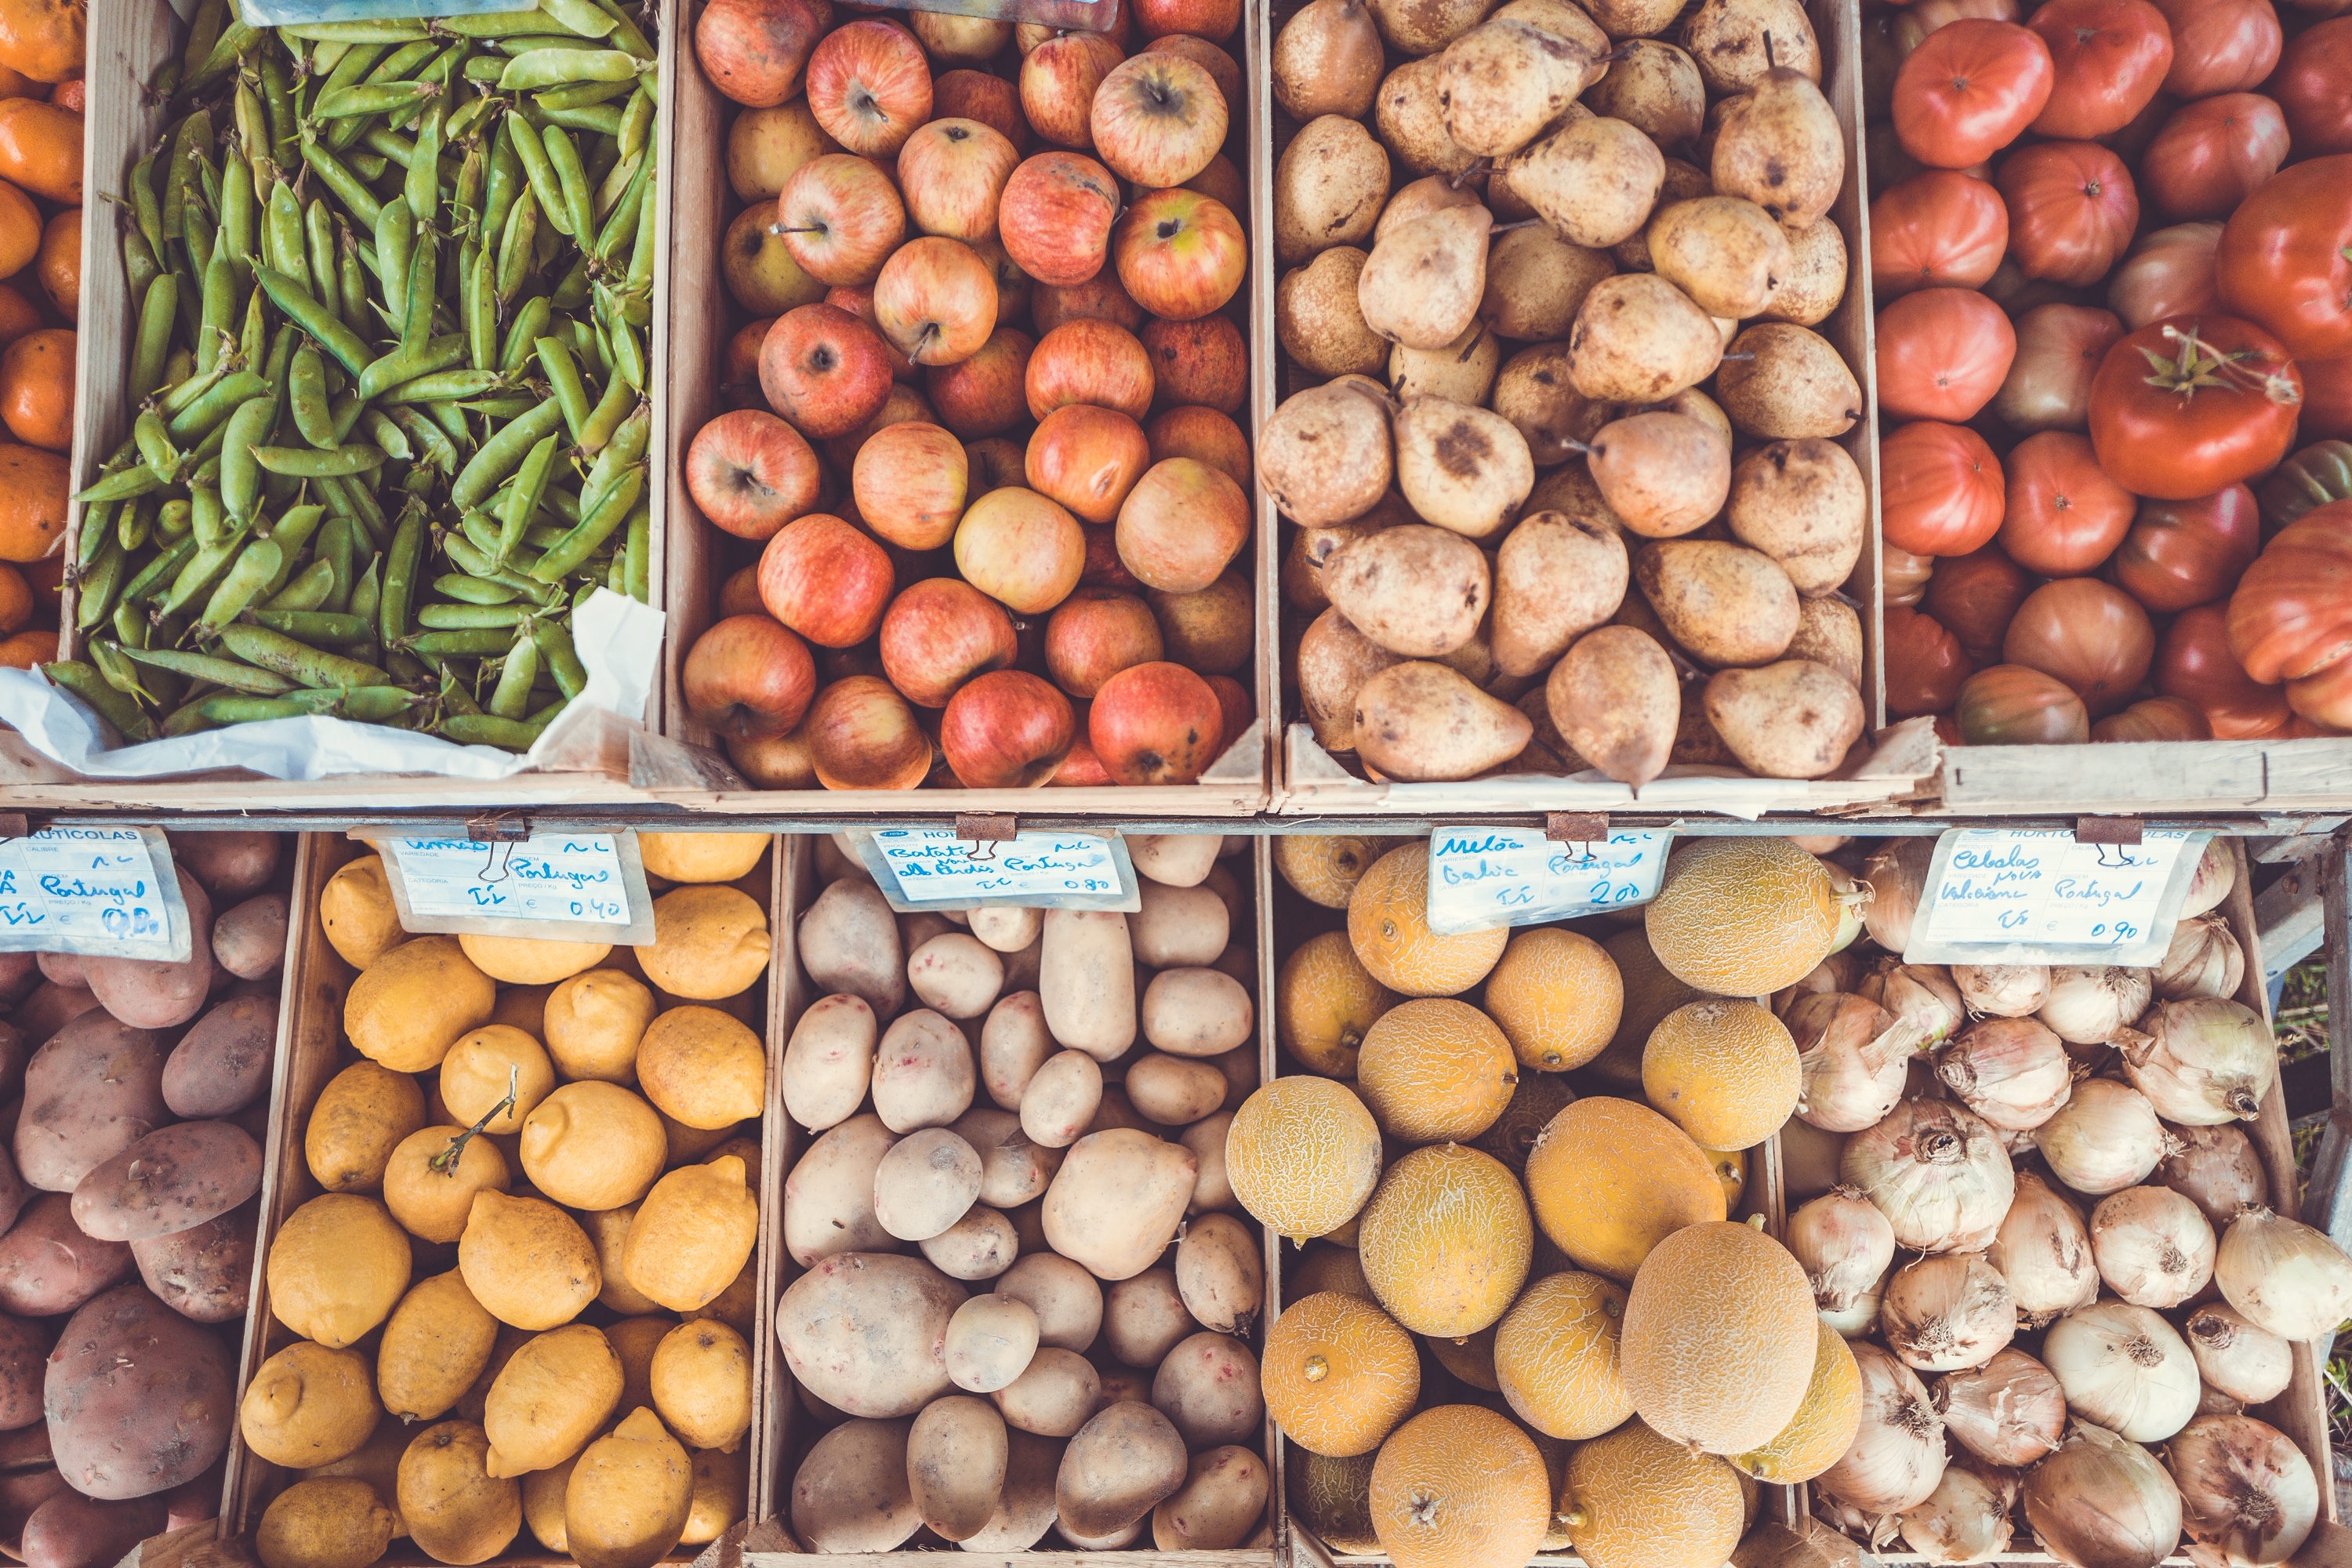 What will go in the shopping basket – fruit and veg or soft drink? #JournalWatch